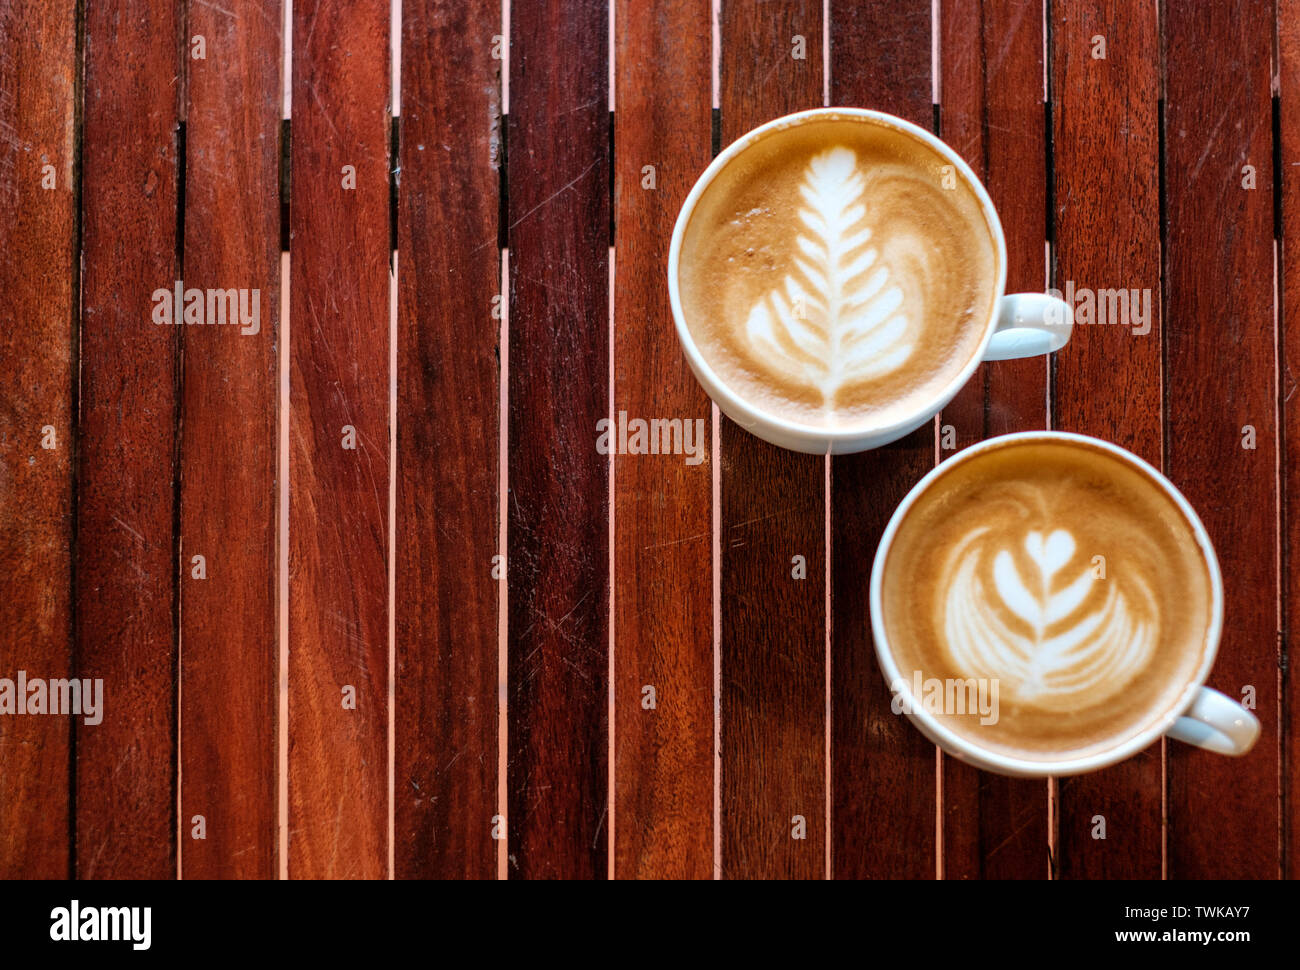 Two coffee cup leaf and heart shaped on wooden table - Stock Image